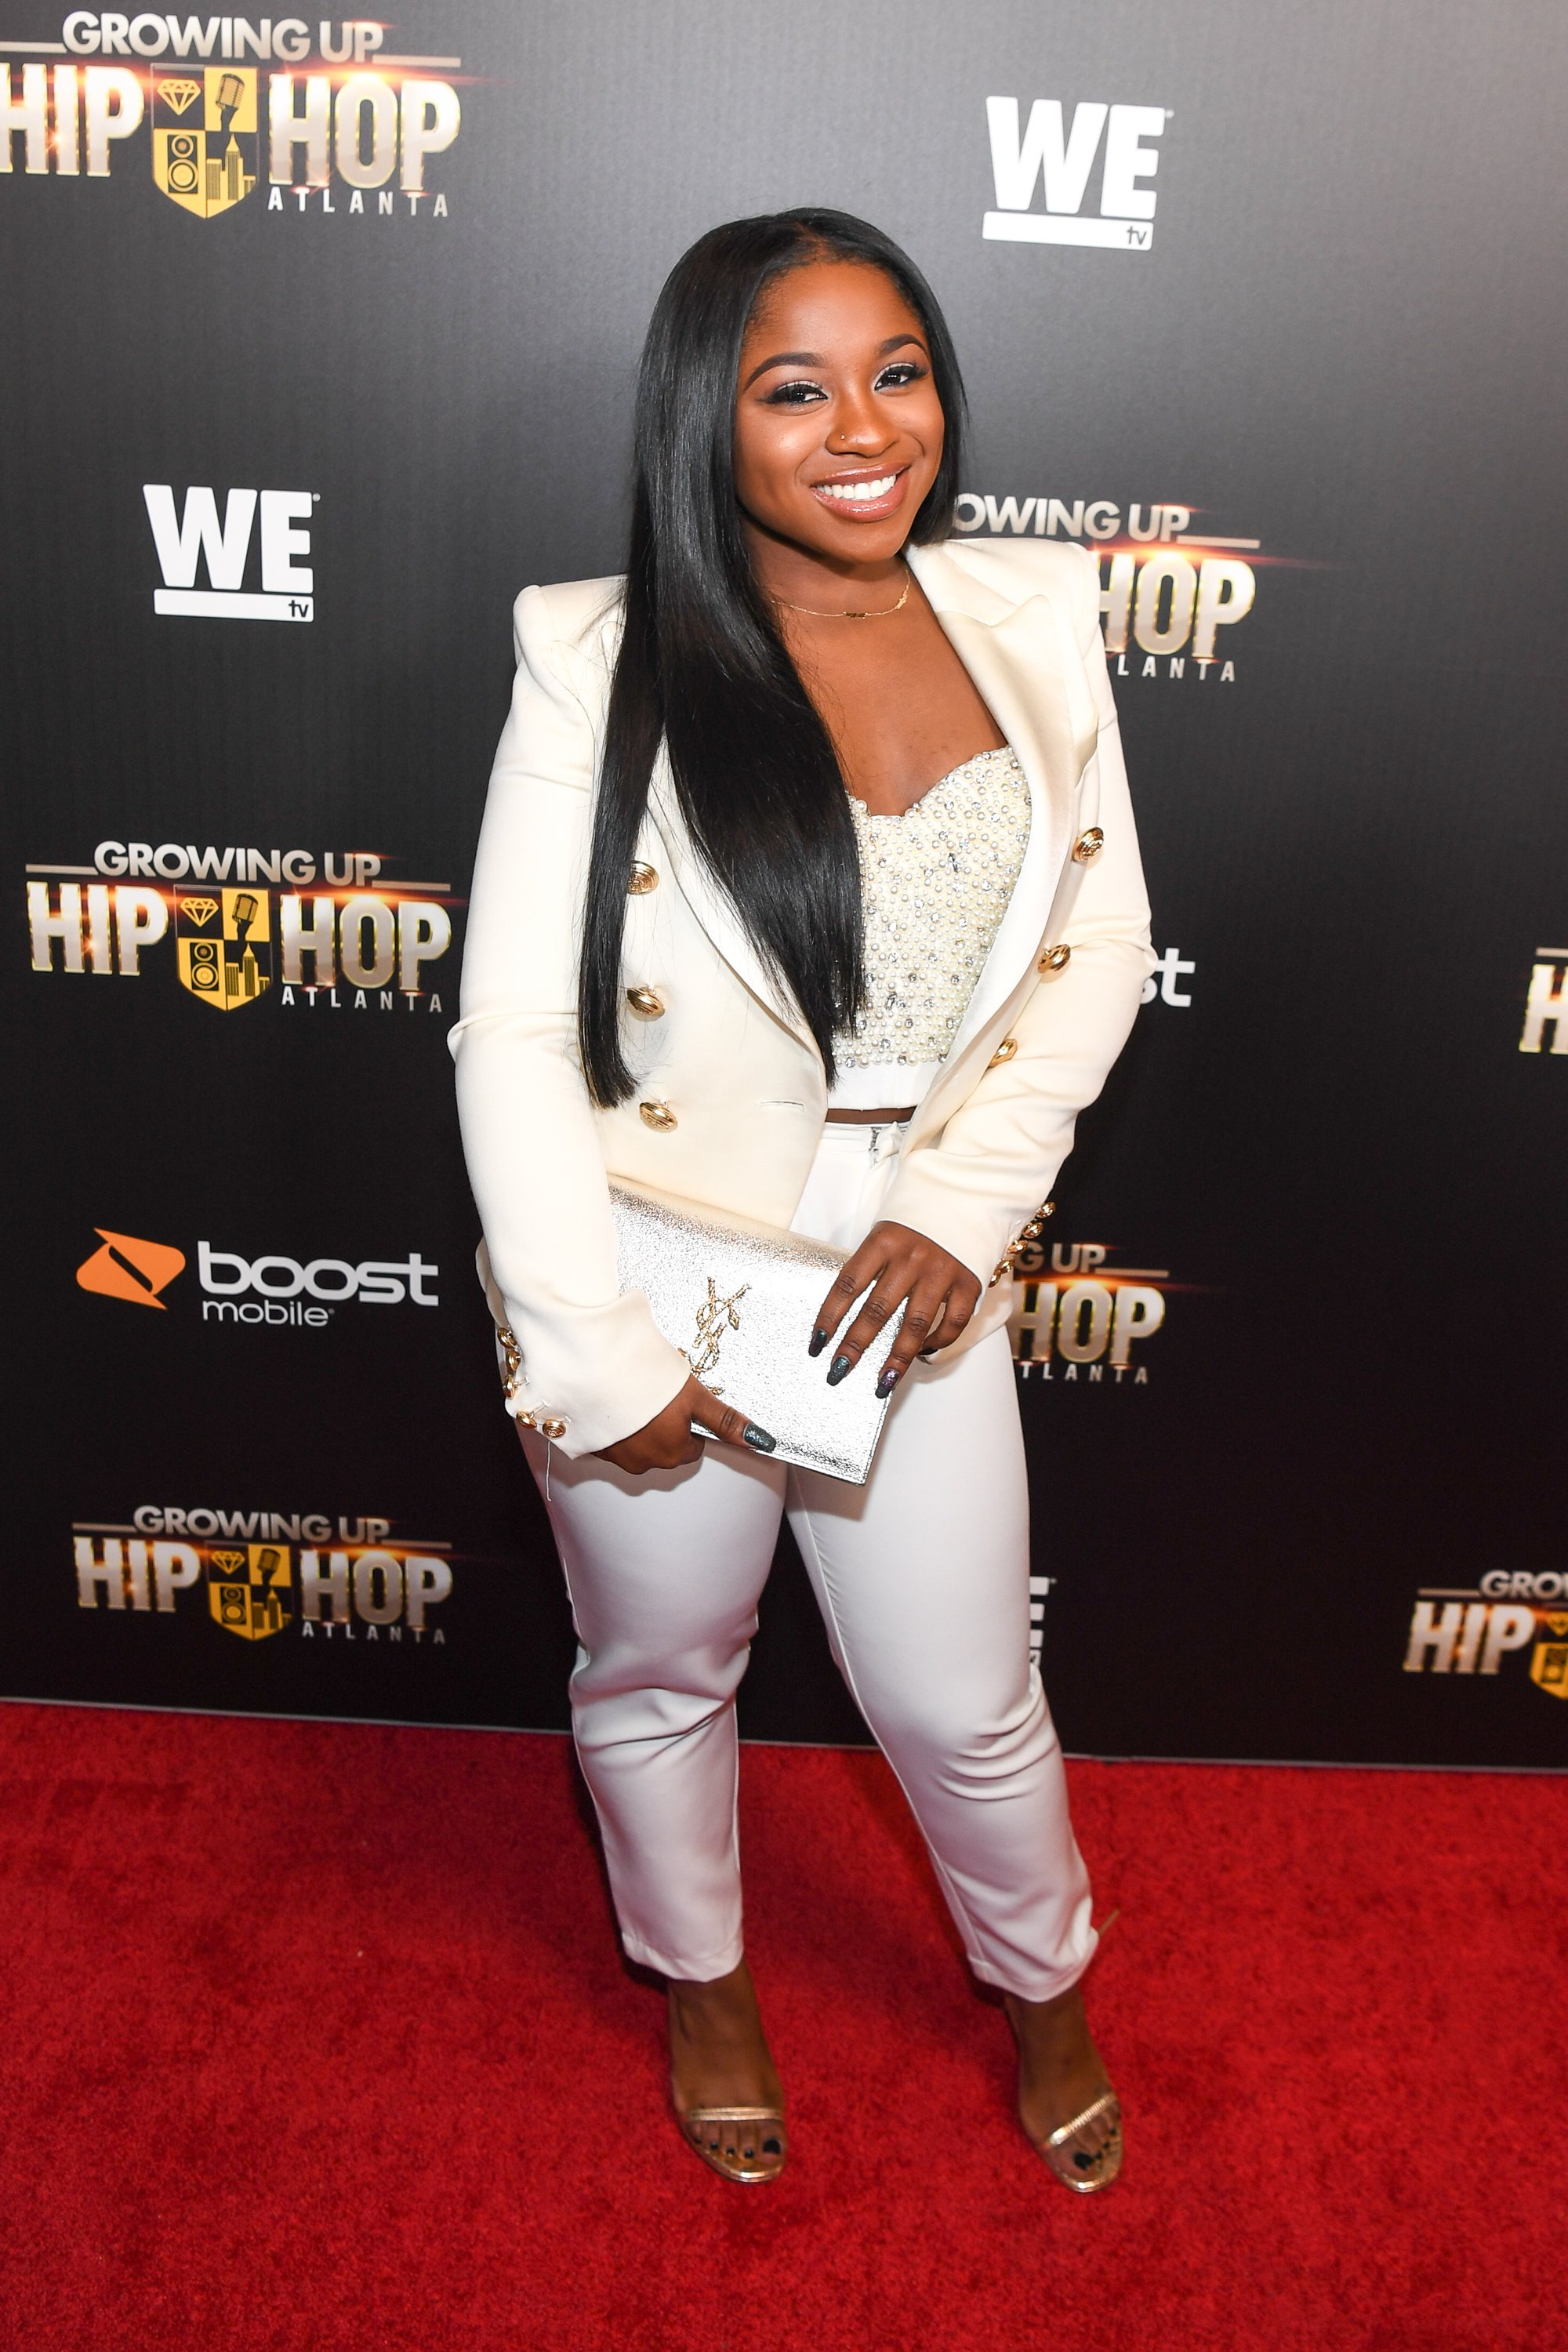 """Reginae Carter at the season 2 premiere of """"Growing Up Hip-Hop Atlanta"""" in January 2018. 